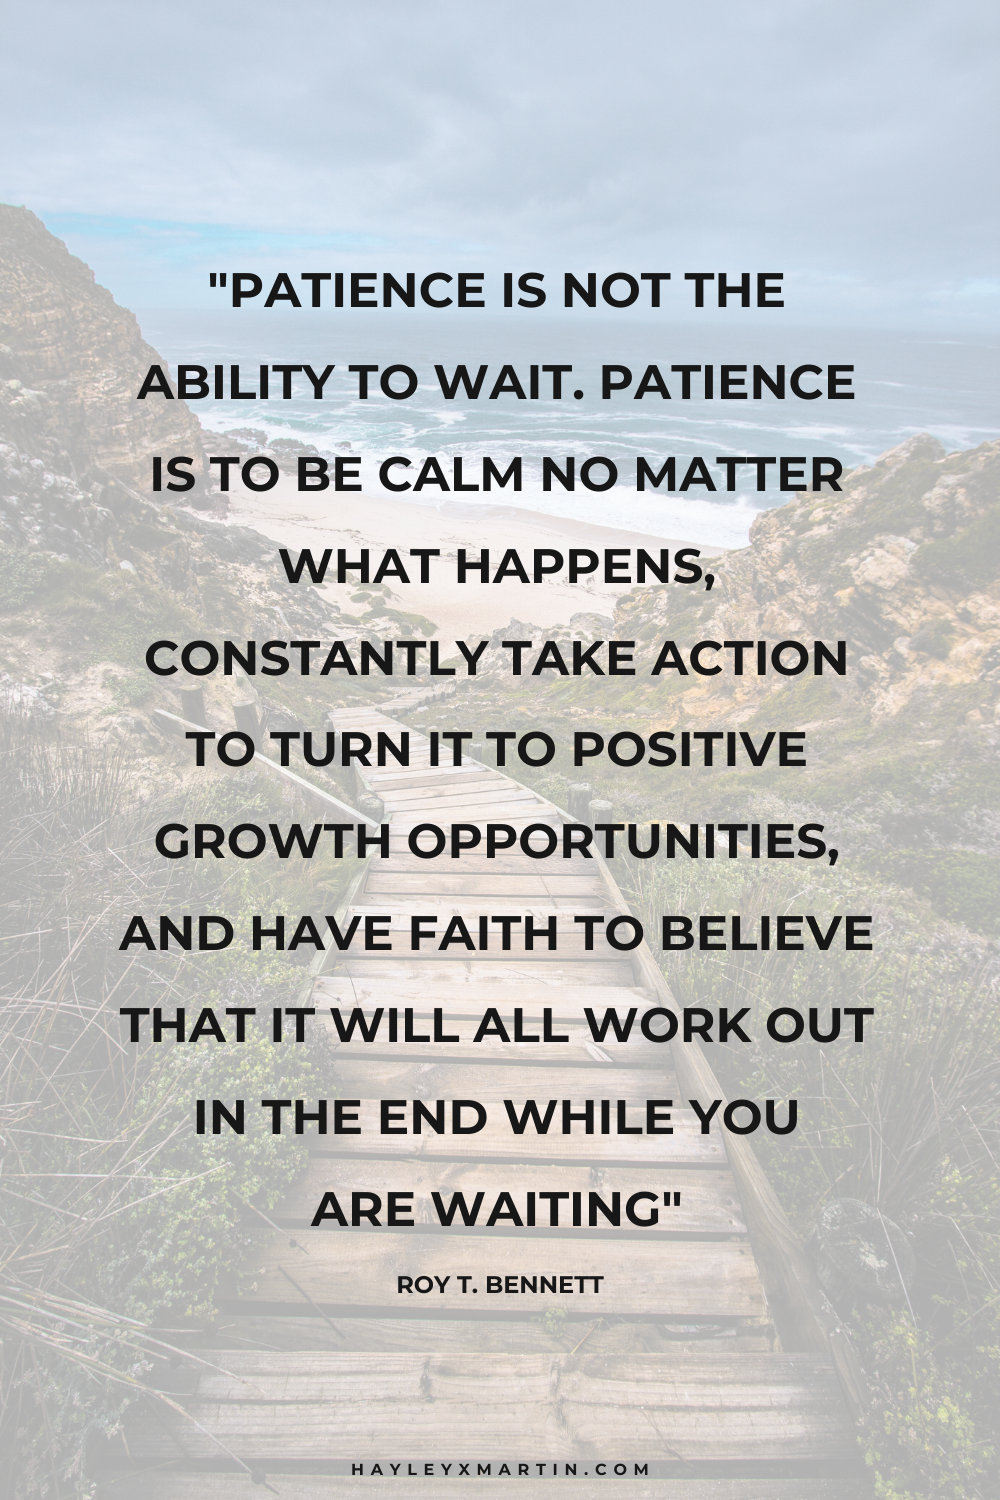 patience is not the ability to wait. patience is to be calm no matter what happens | hayleyxmartin